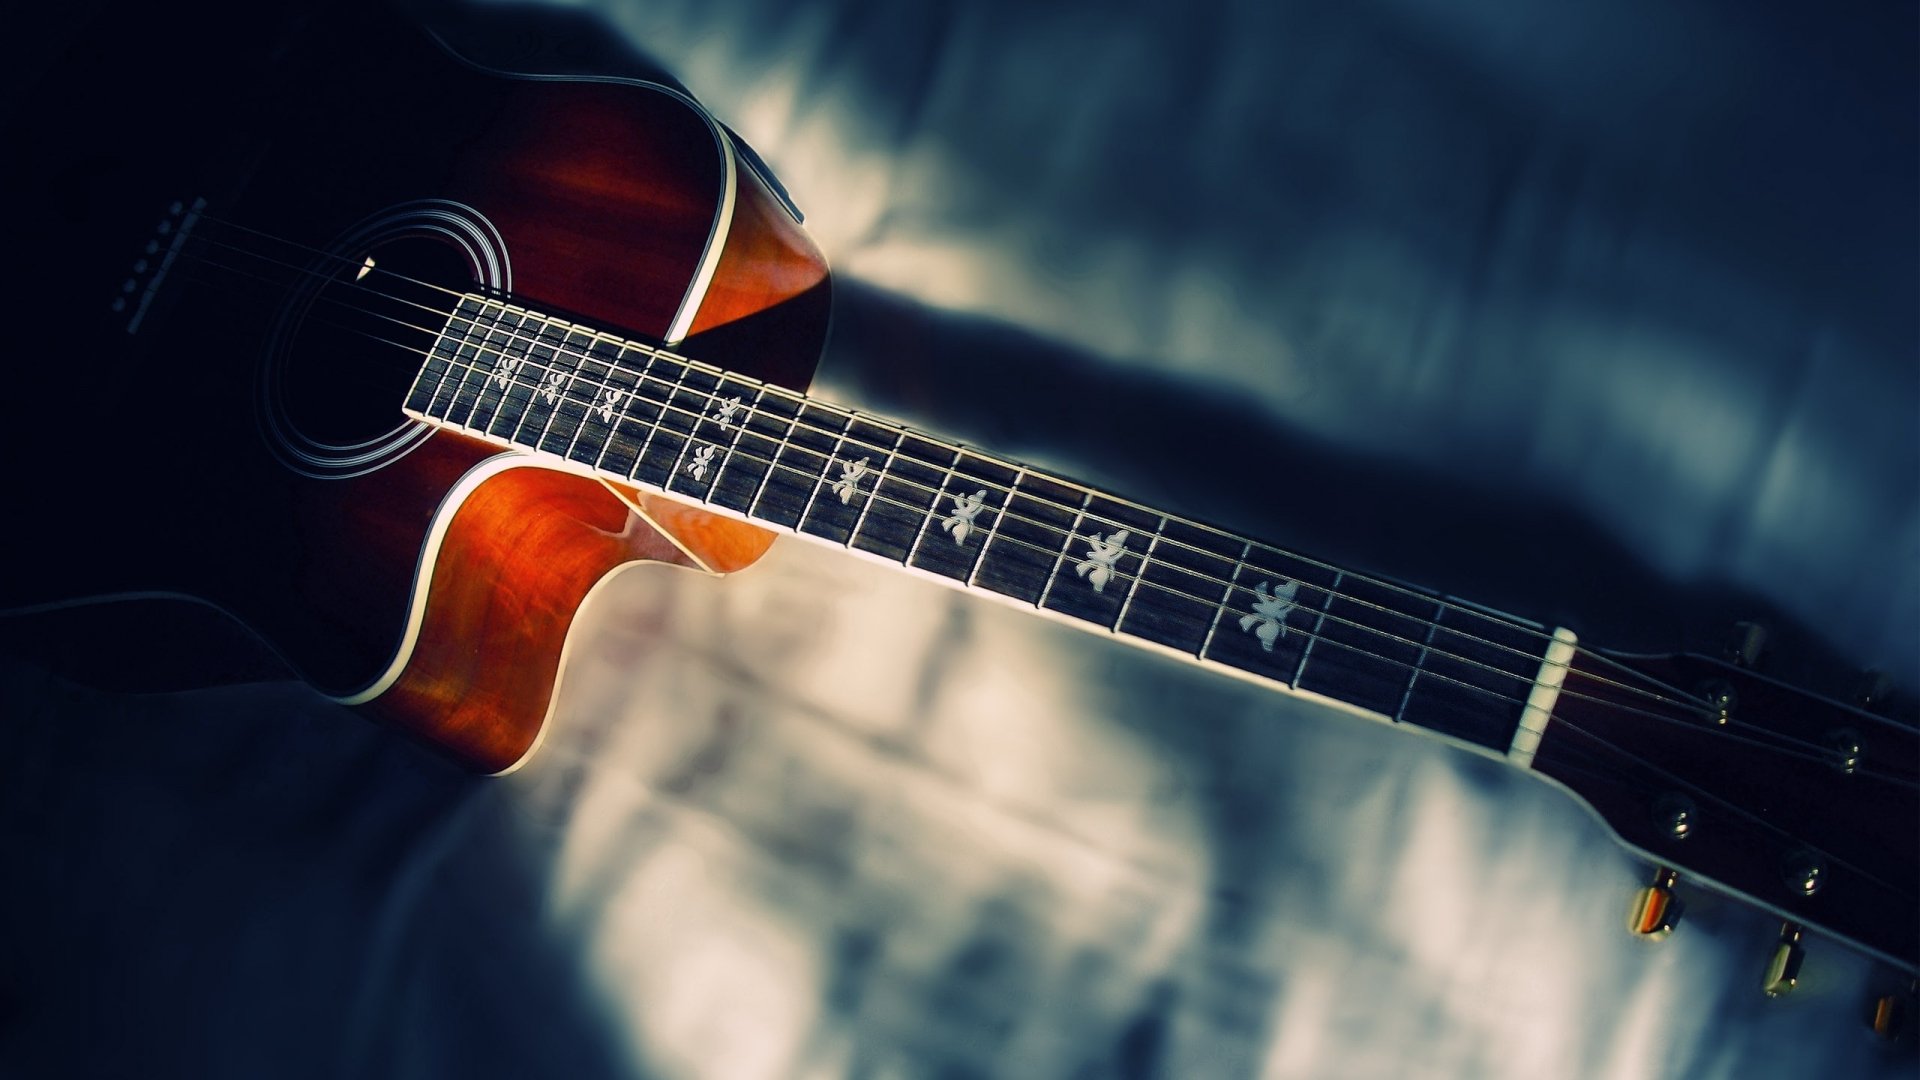 Guitar Wallpaper Iphone Osjourno Awesomeguitarwallpapersdesignssmall Collection Of Classic Guitar Wallpaper On Hdwallpapers 1920x1080